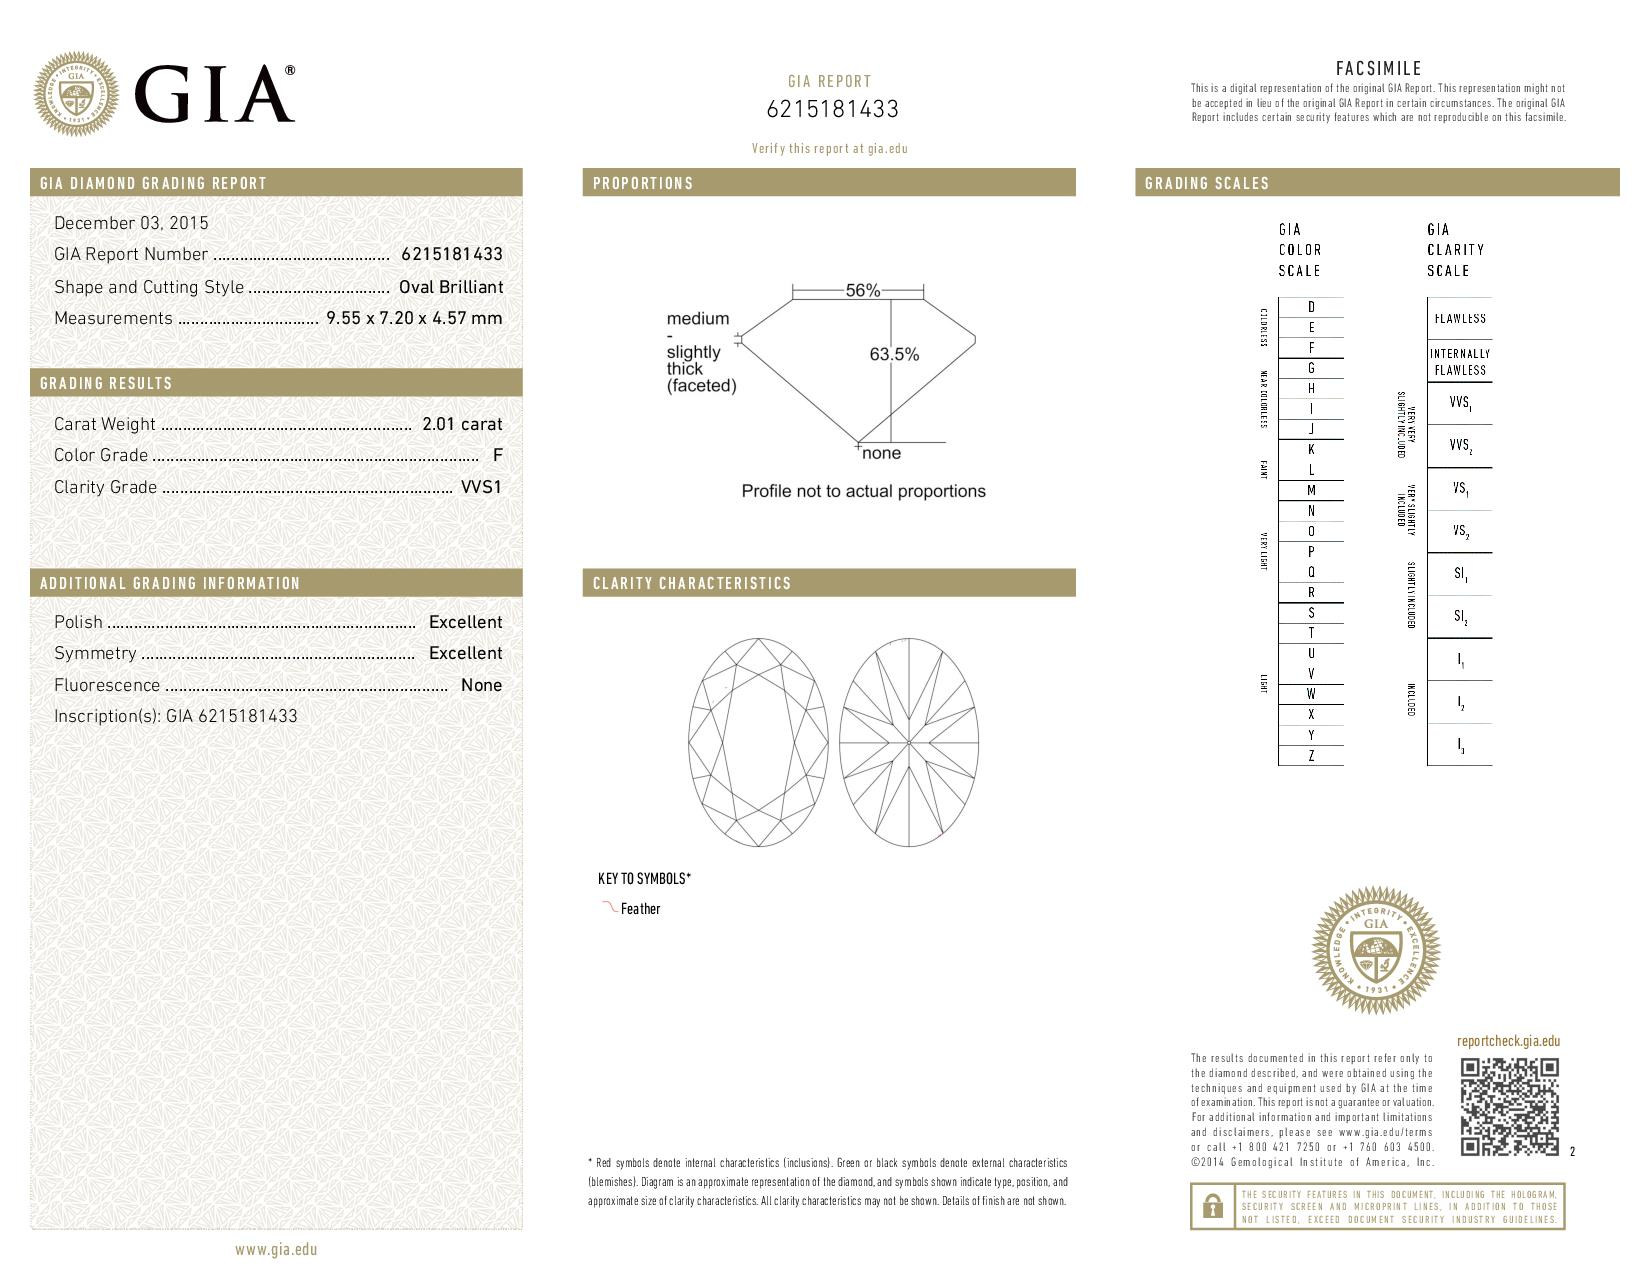 This is a 2.01 carat oval shape, F color, VVS1 clarity natural diamond accompanied by a GIA grading report.